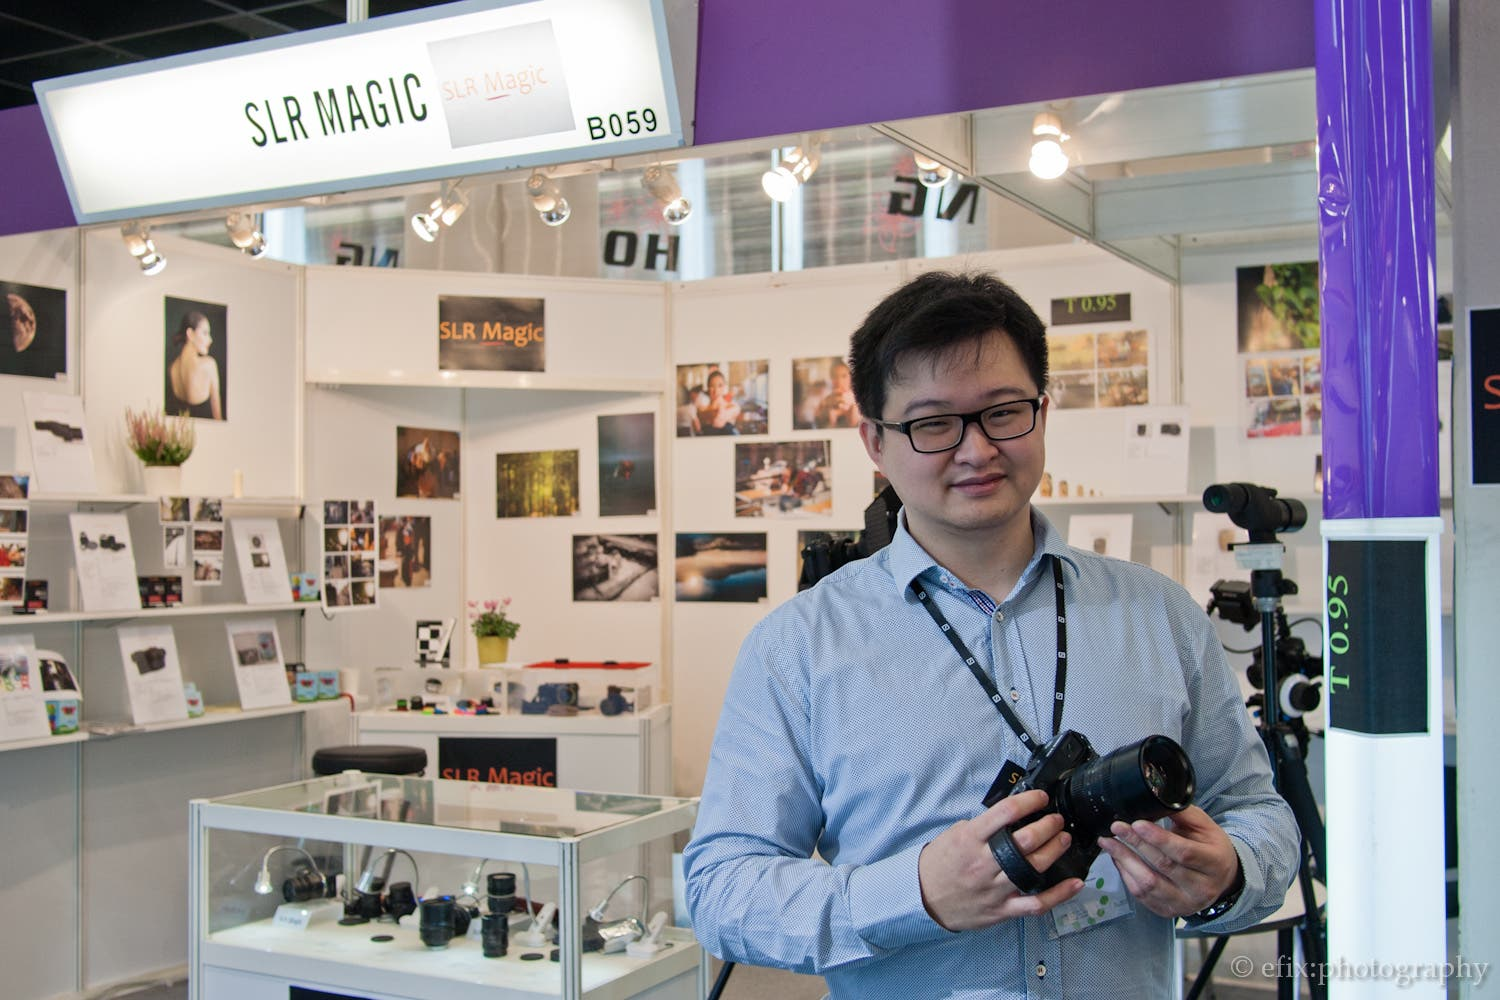 SLR Magic to Discontinue Development of M-Mount Lenses